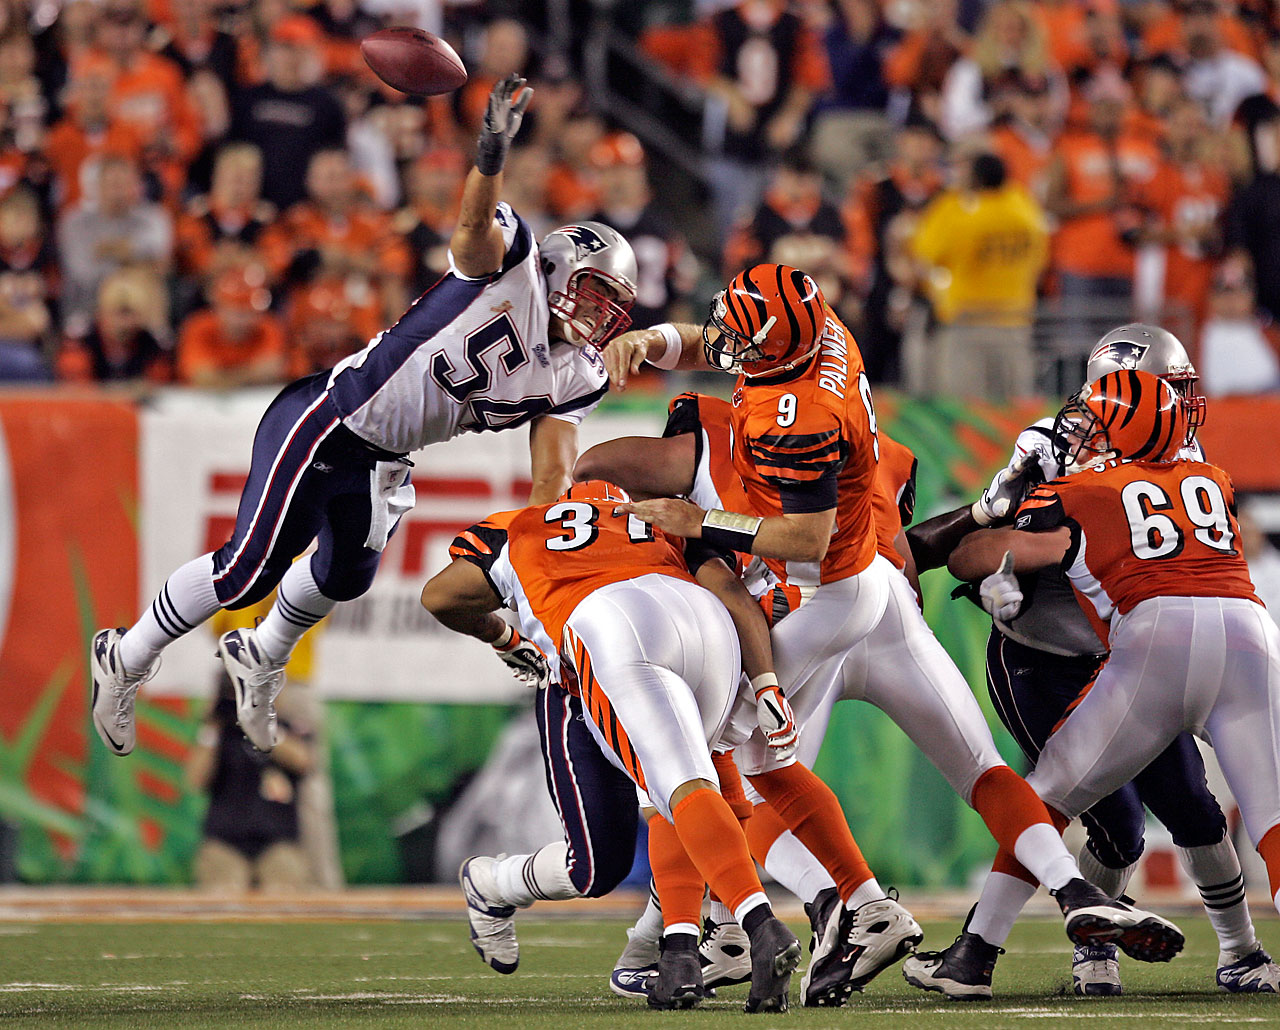 Tedy Bruschi leaps over the line of scrimmage to knock down a Palmer pass during a 2007 Monday night game.